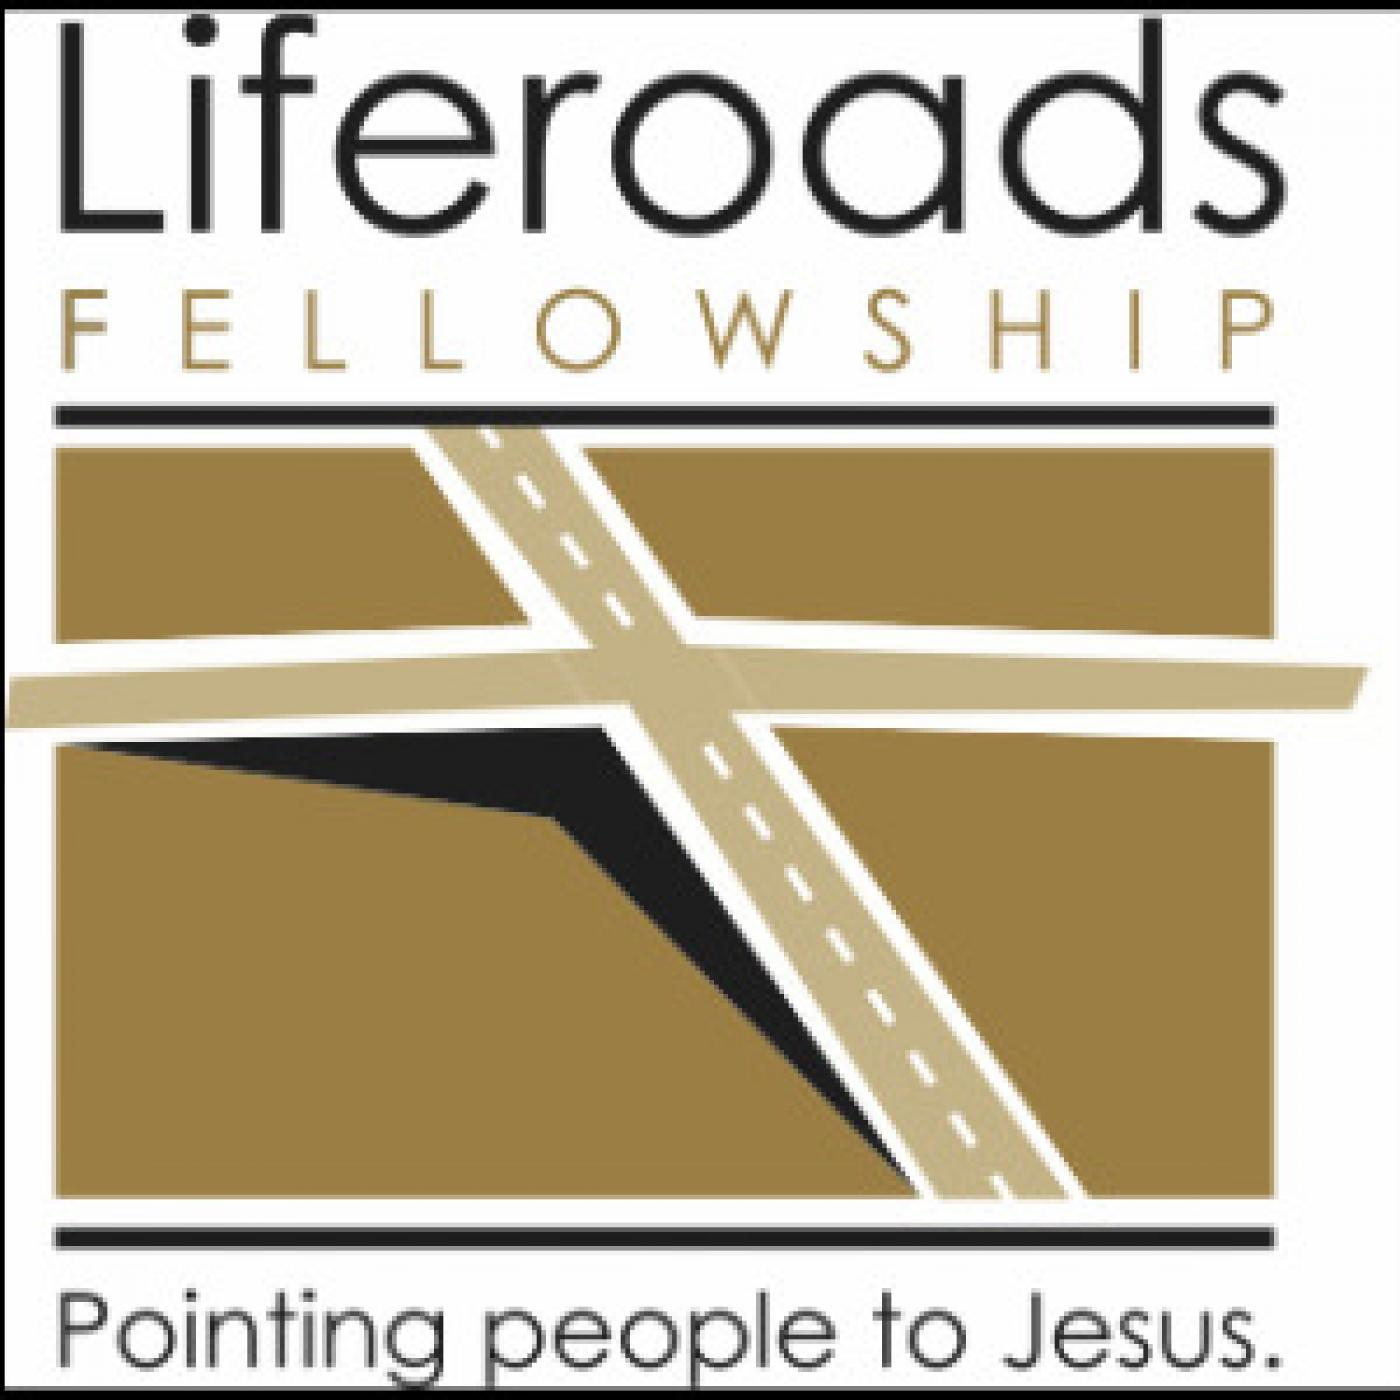 Liferoads Fellowship Sunday Messages